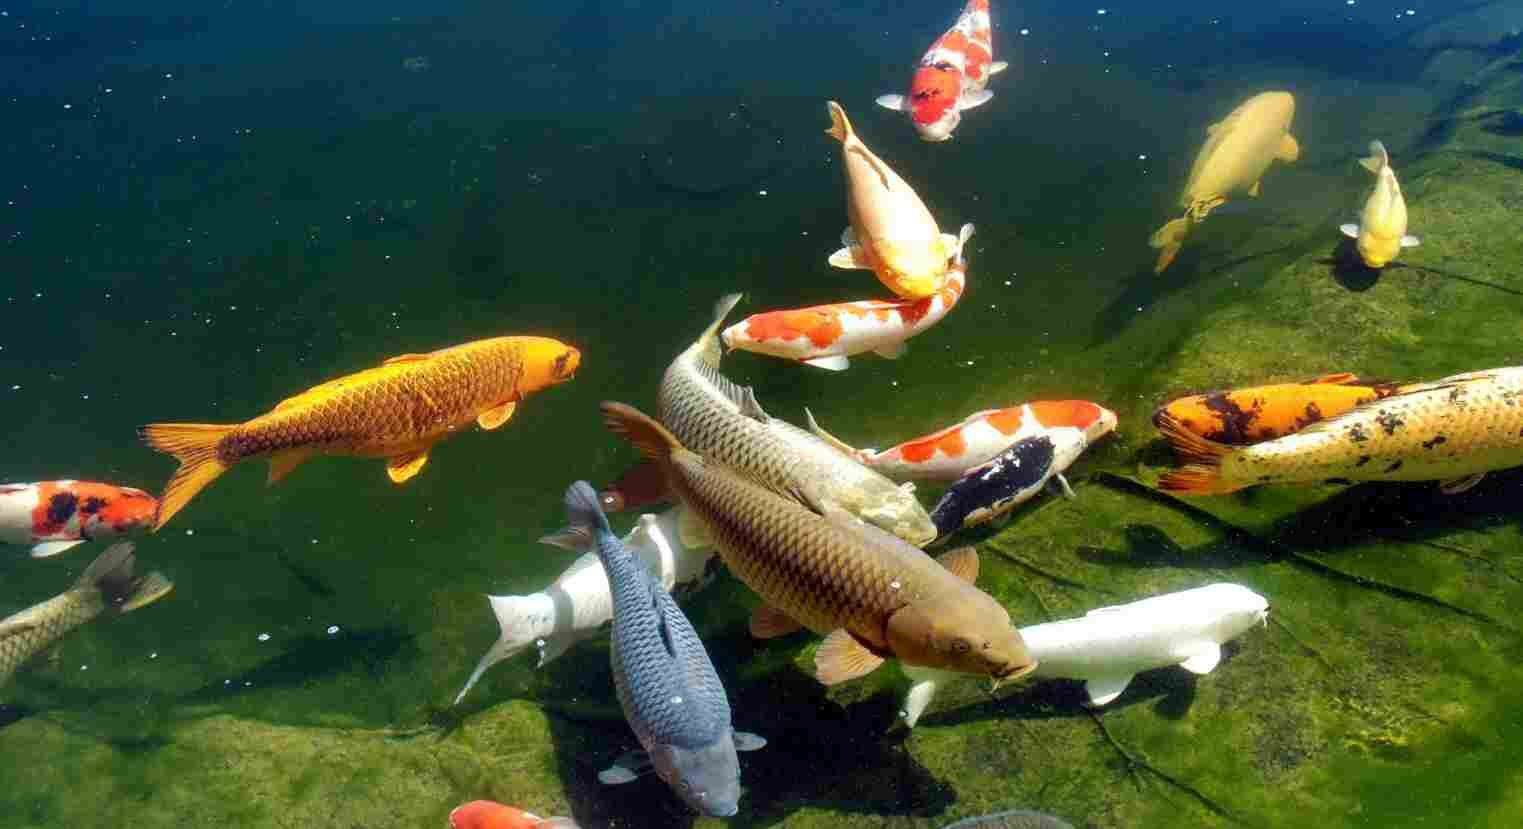 Koi fish pond wallpaper hd koi fish in the pond koi for Pictures of coy fish